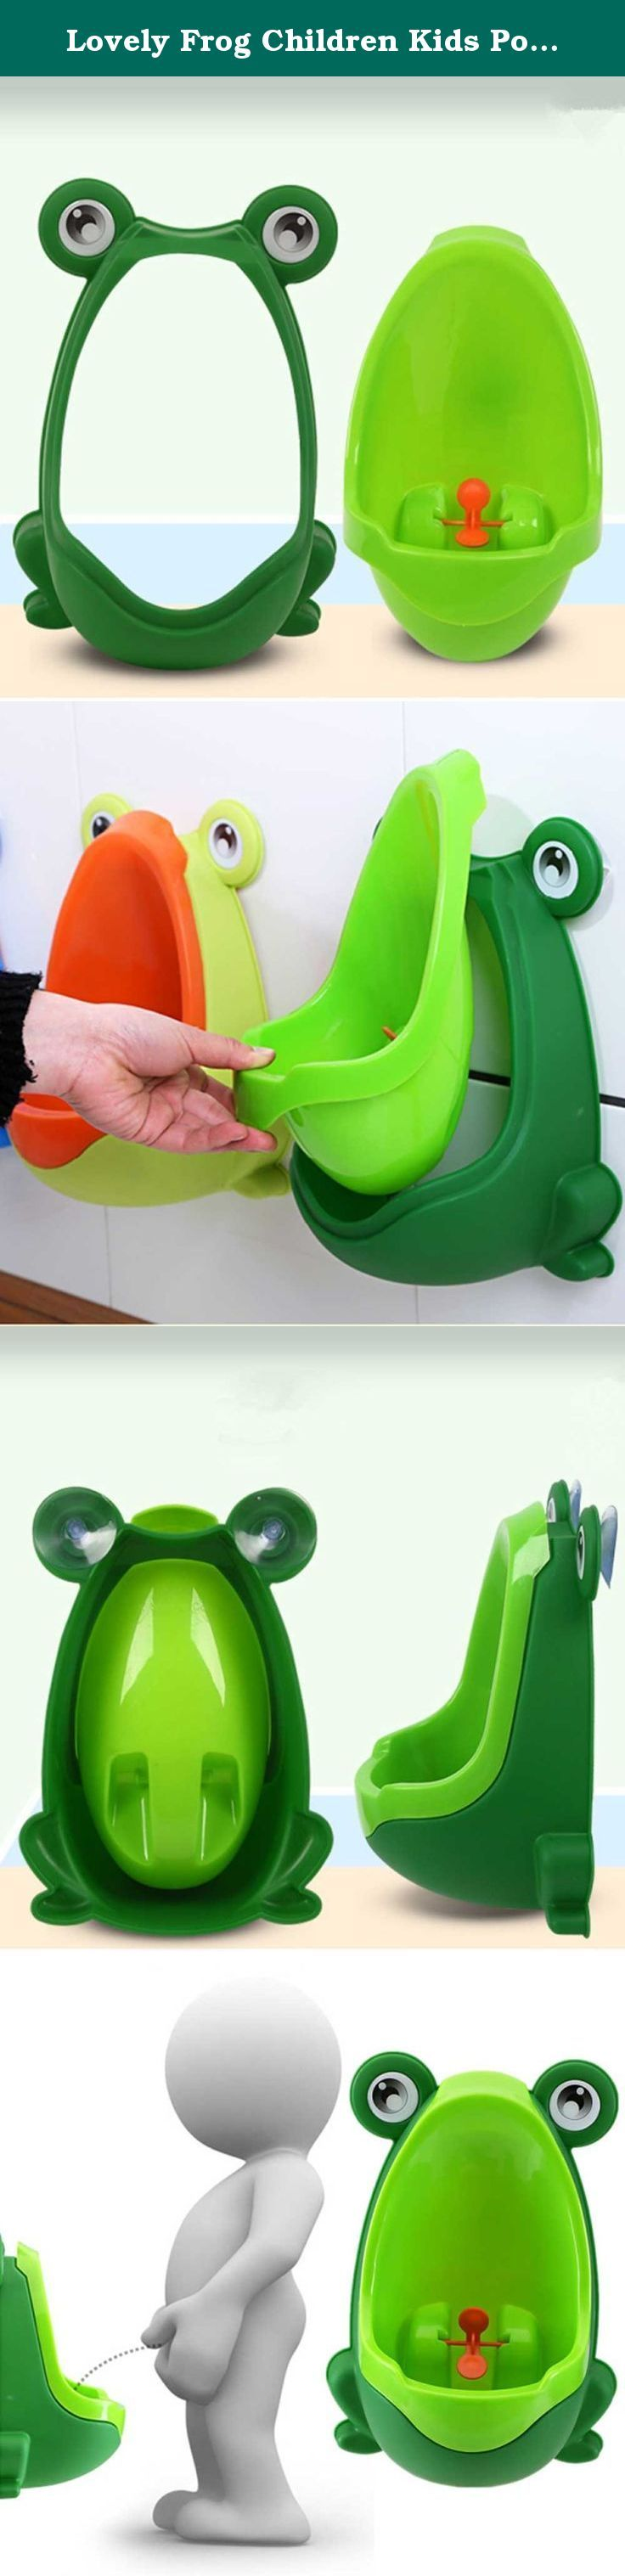 Lovely Frog Children Kids Potty Removable Toilet Training Kids Urinal Early Learning Boys Pee Trainer Bathroom (Deep Green). Description Environmentally friendly material, nontoxic and no peculiar smell. Urine groove separation design and light surface makes the item easy to clean. Lovely frog shape and rotating windmill improves your babies interest and trains they pee by themselves. Strong sucker can adjust the height of the item according to babies needs. Large capacity ensure the…